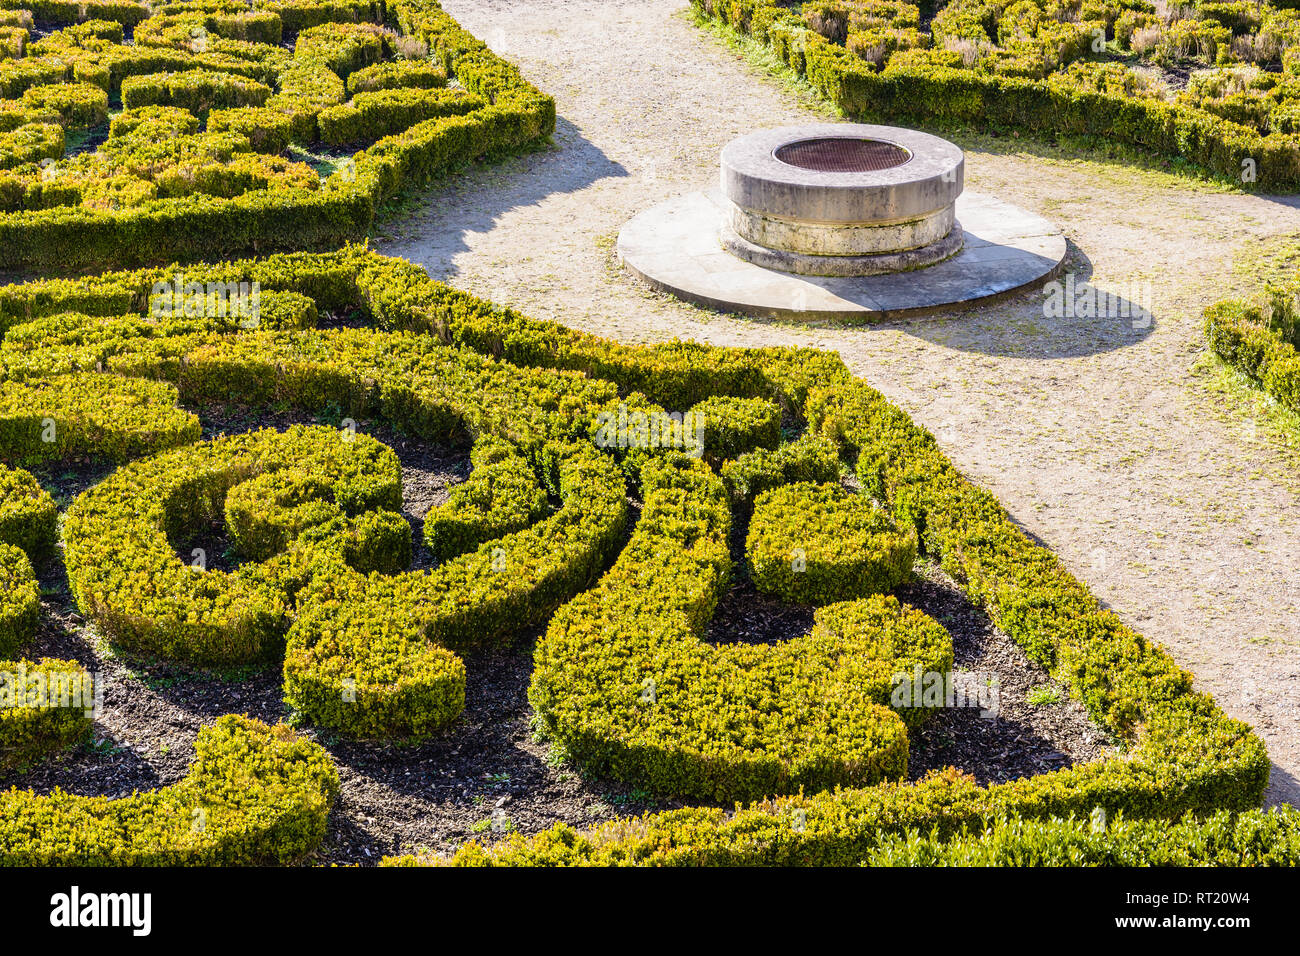 The Parterre De Broderie In The French Formal Garden Of The ...